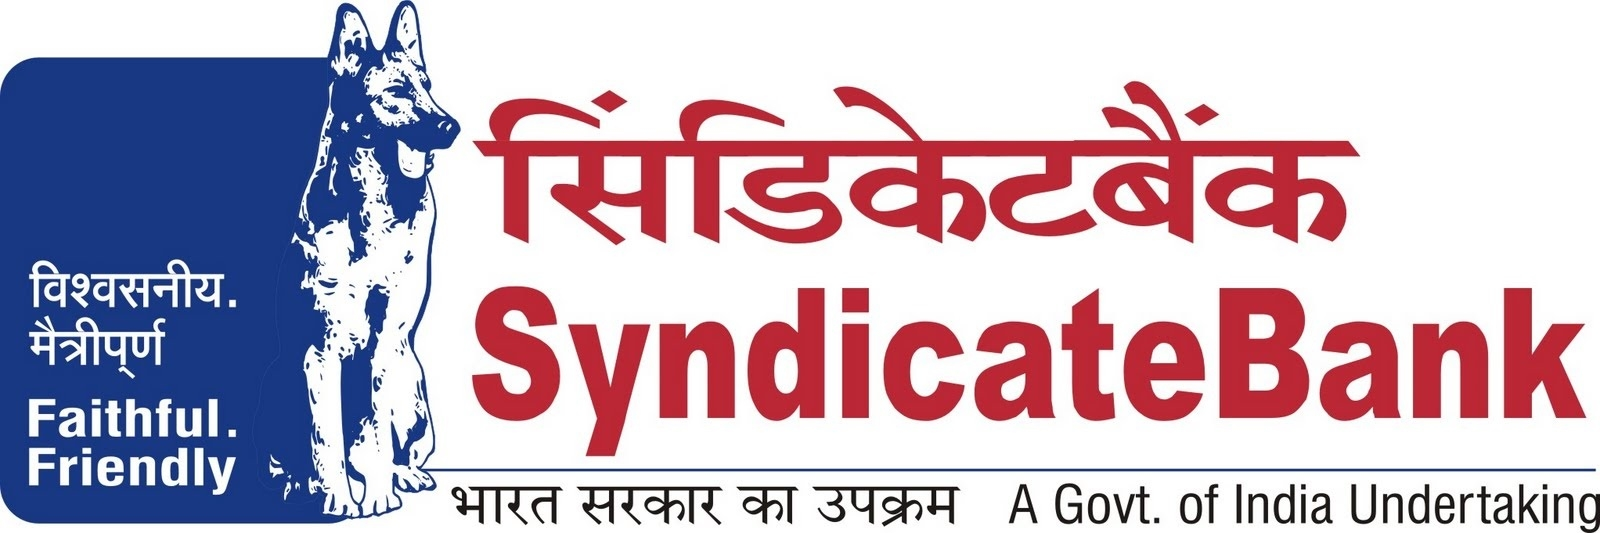 Syndicate Bank reports net loss of Rs 263 cr in Q1